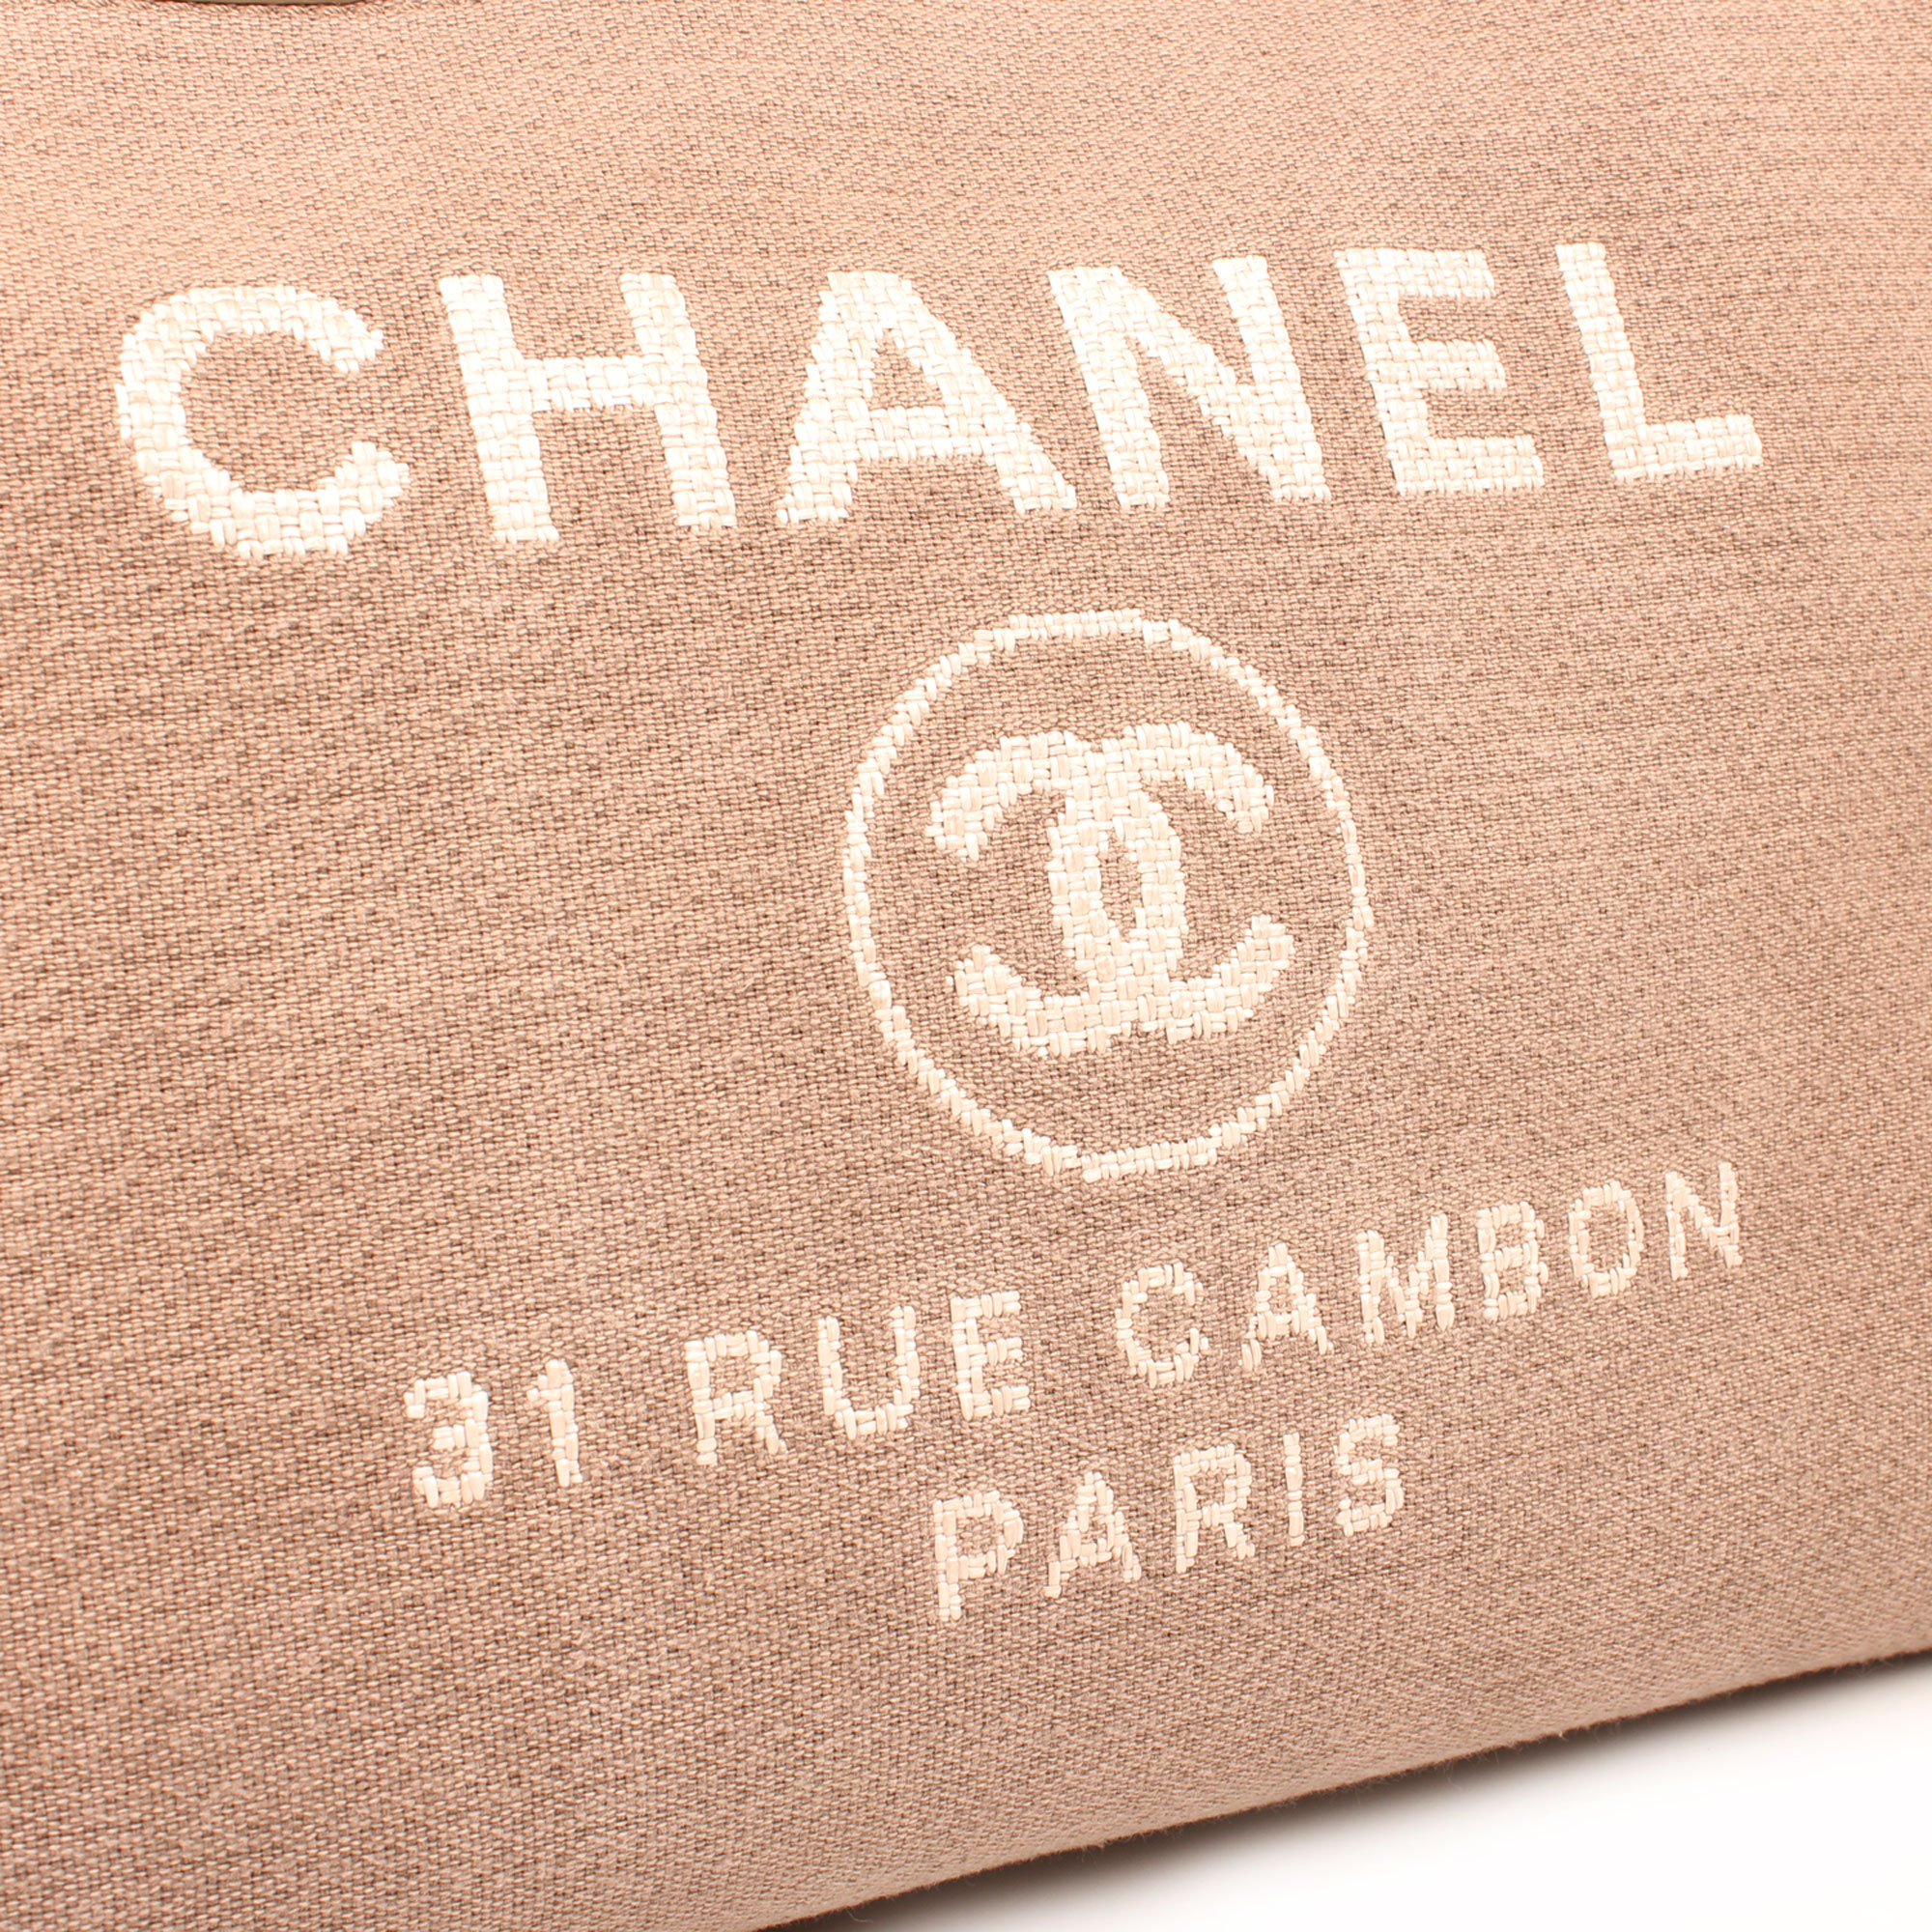 Lettering image of chanel ecru deauville tote bag interior